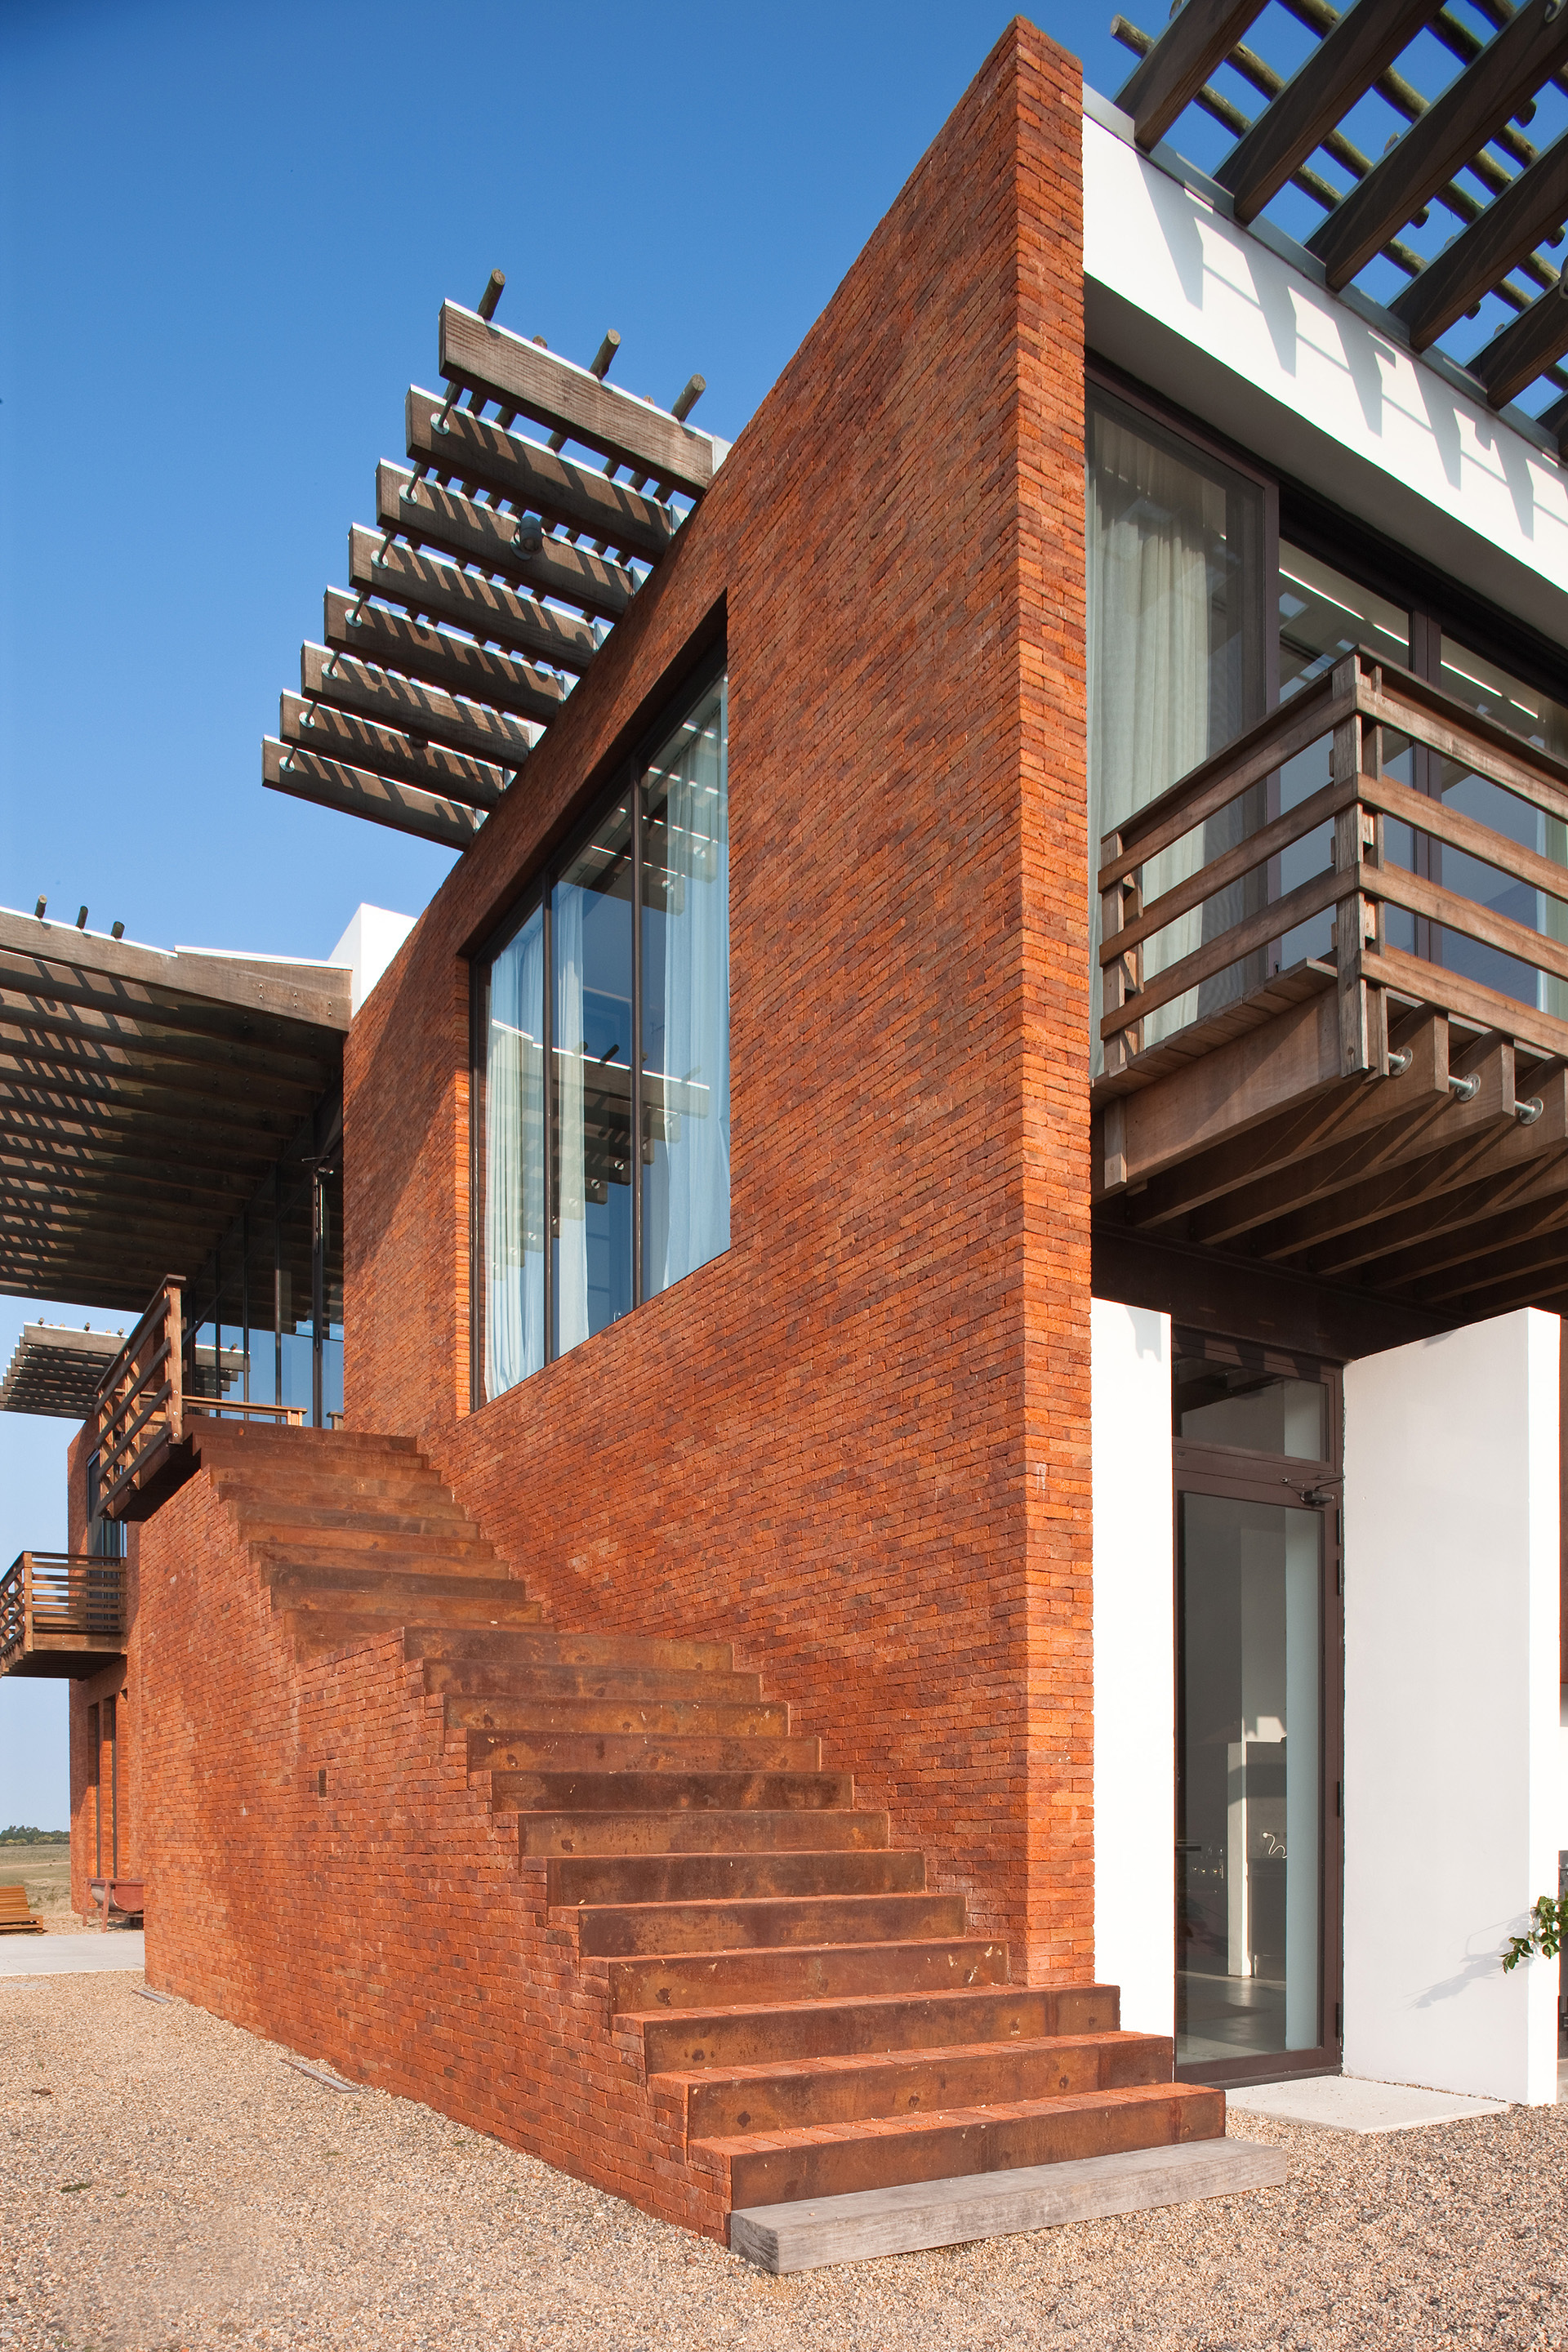 Gallery of luna llena house candida tabet arquitetura 13 - Residence secondaire candida tabet architecture ...